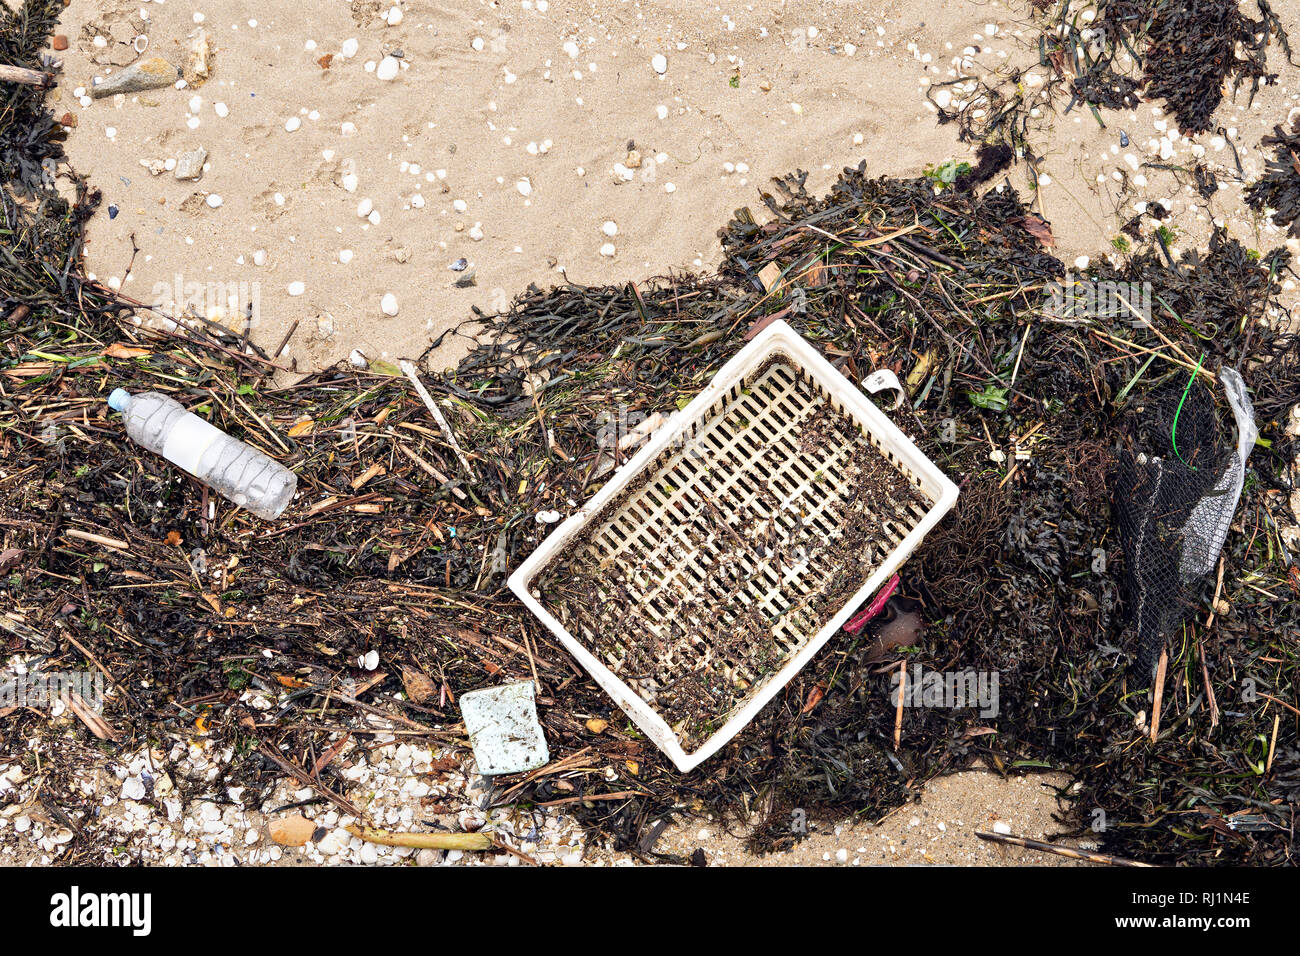 Garbage on the beach. Sea plastic pollution concept. Top view - Stock Image